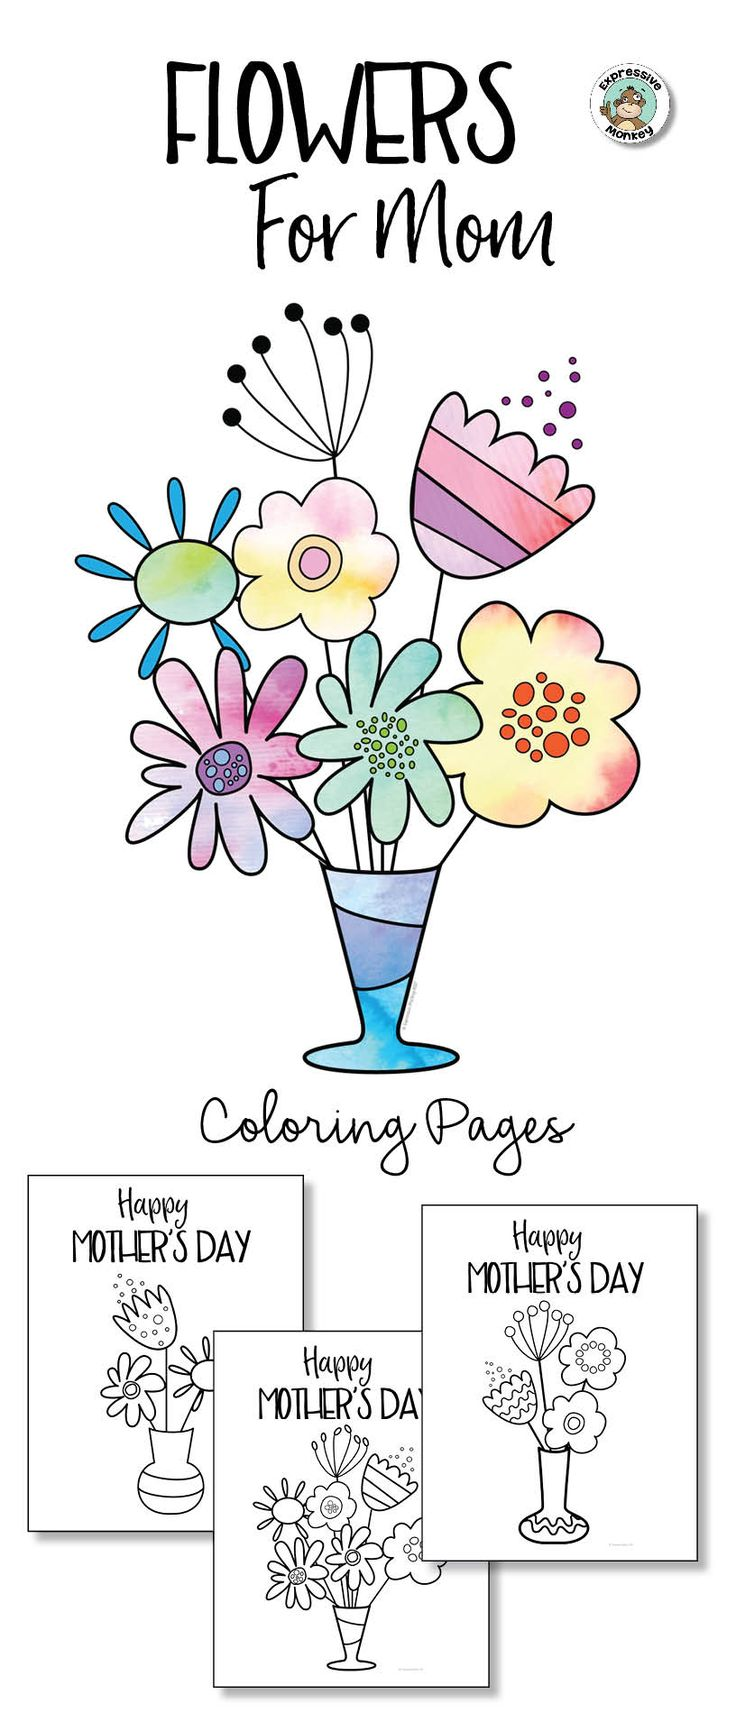 Flower coloring pages for the front of a Mother's Day card.